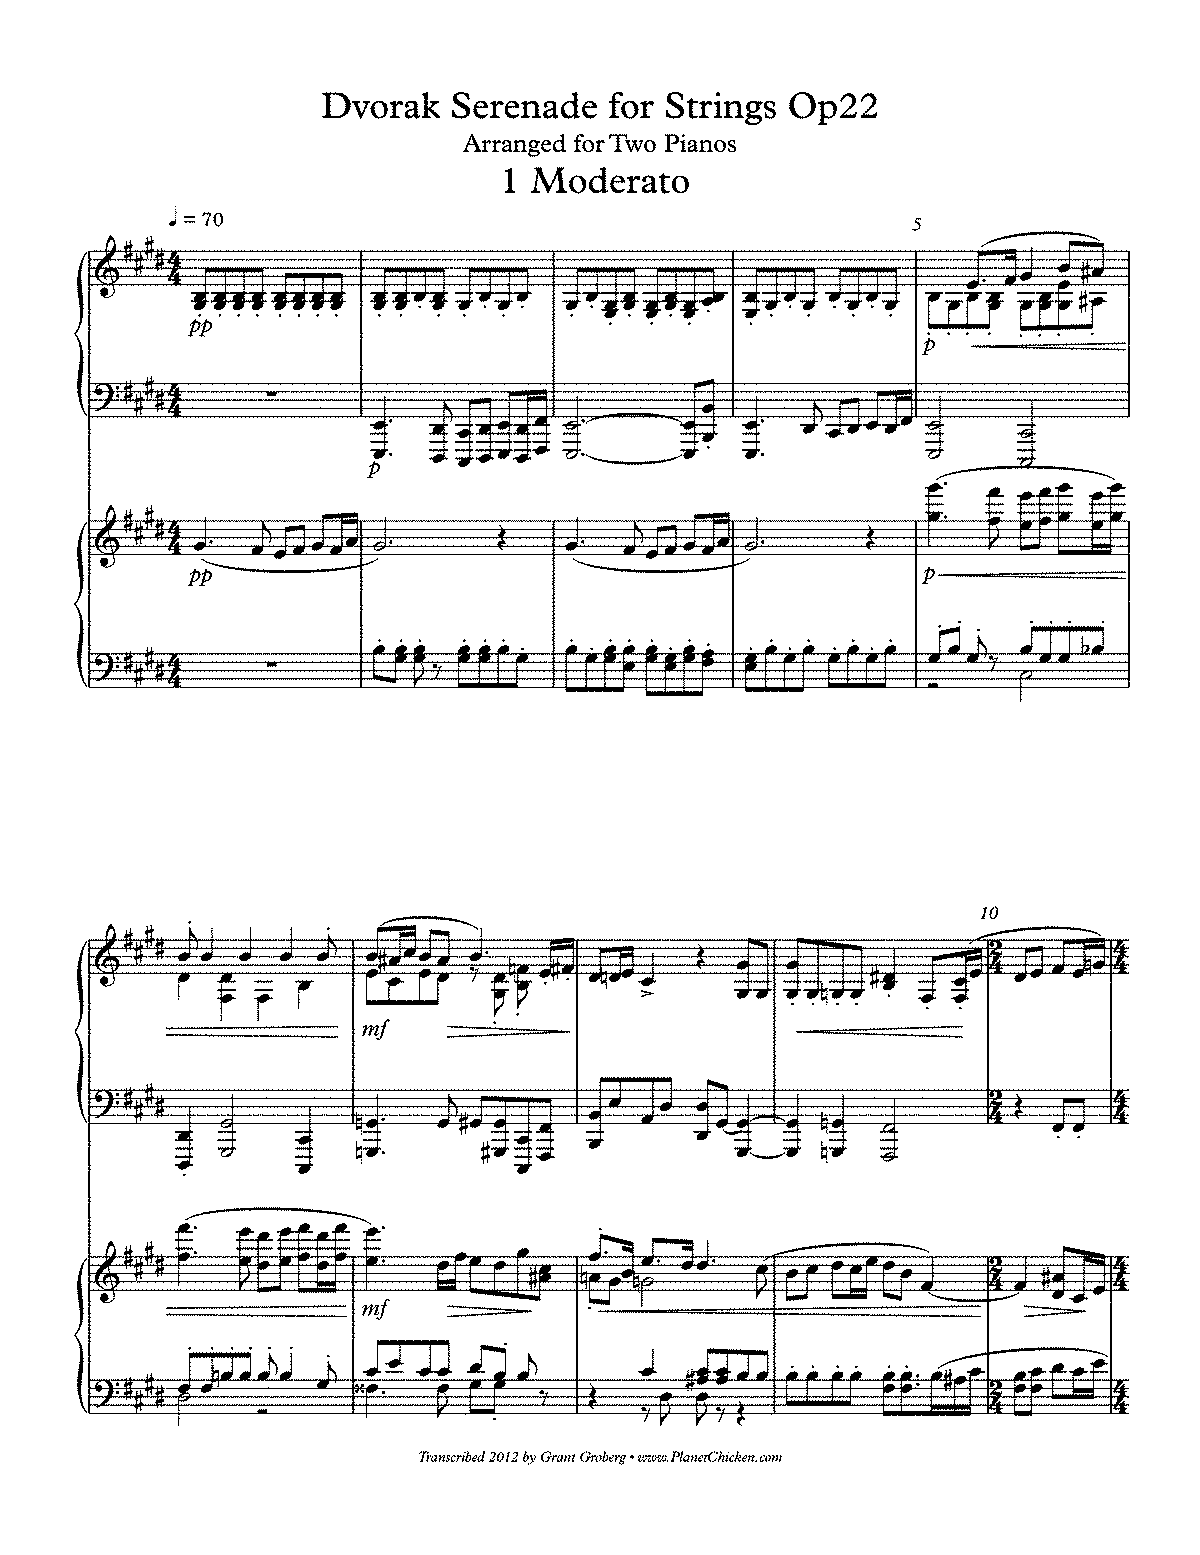 PMLP59797-DvoraK Serenade Op22 complete - Serenade for Strings Op 22.pdf